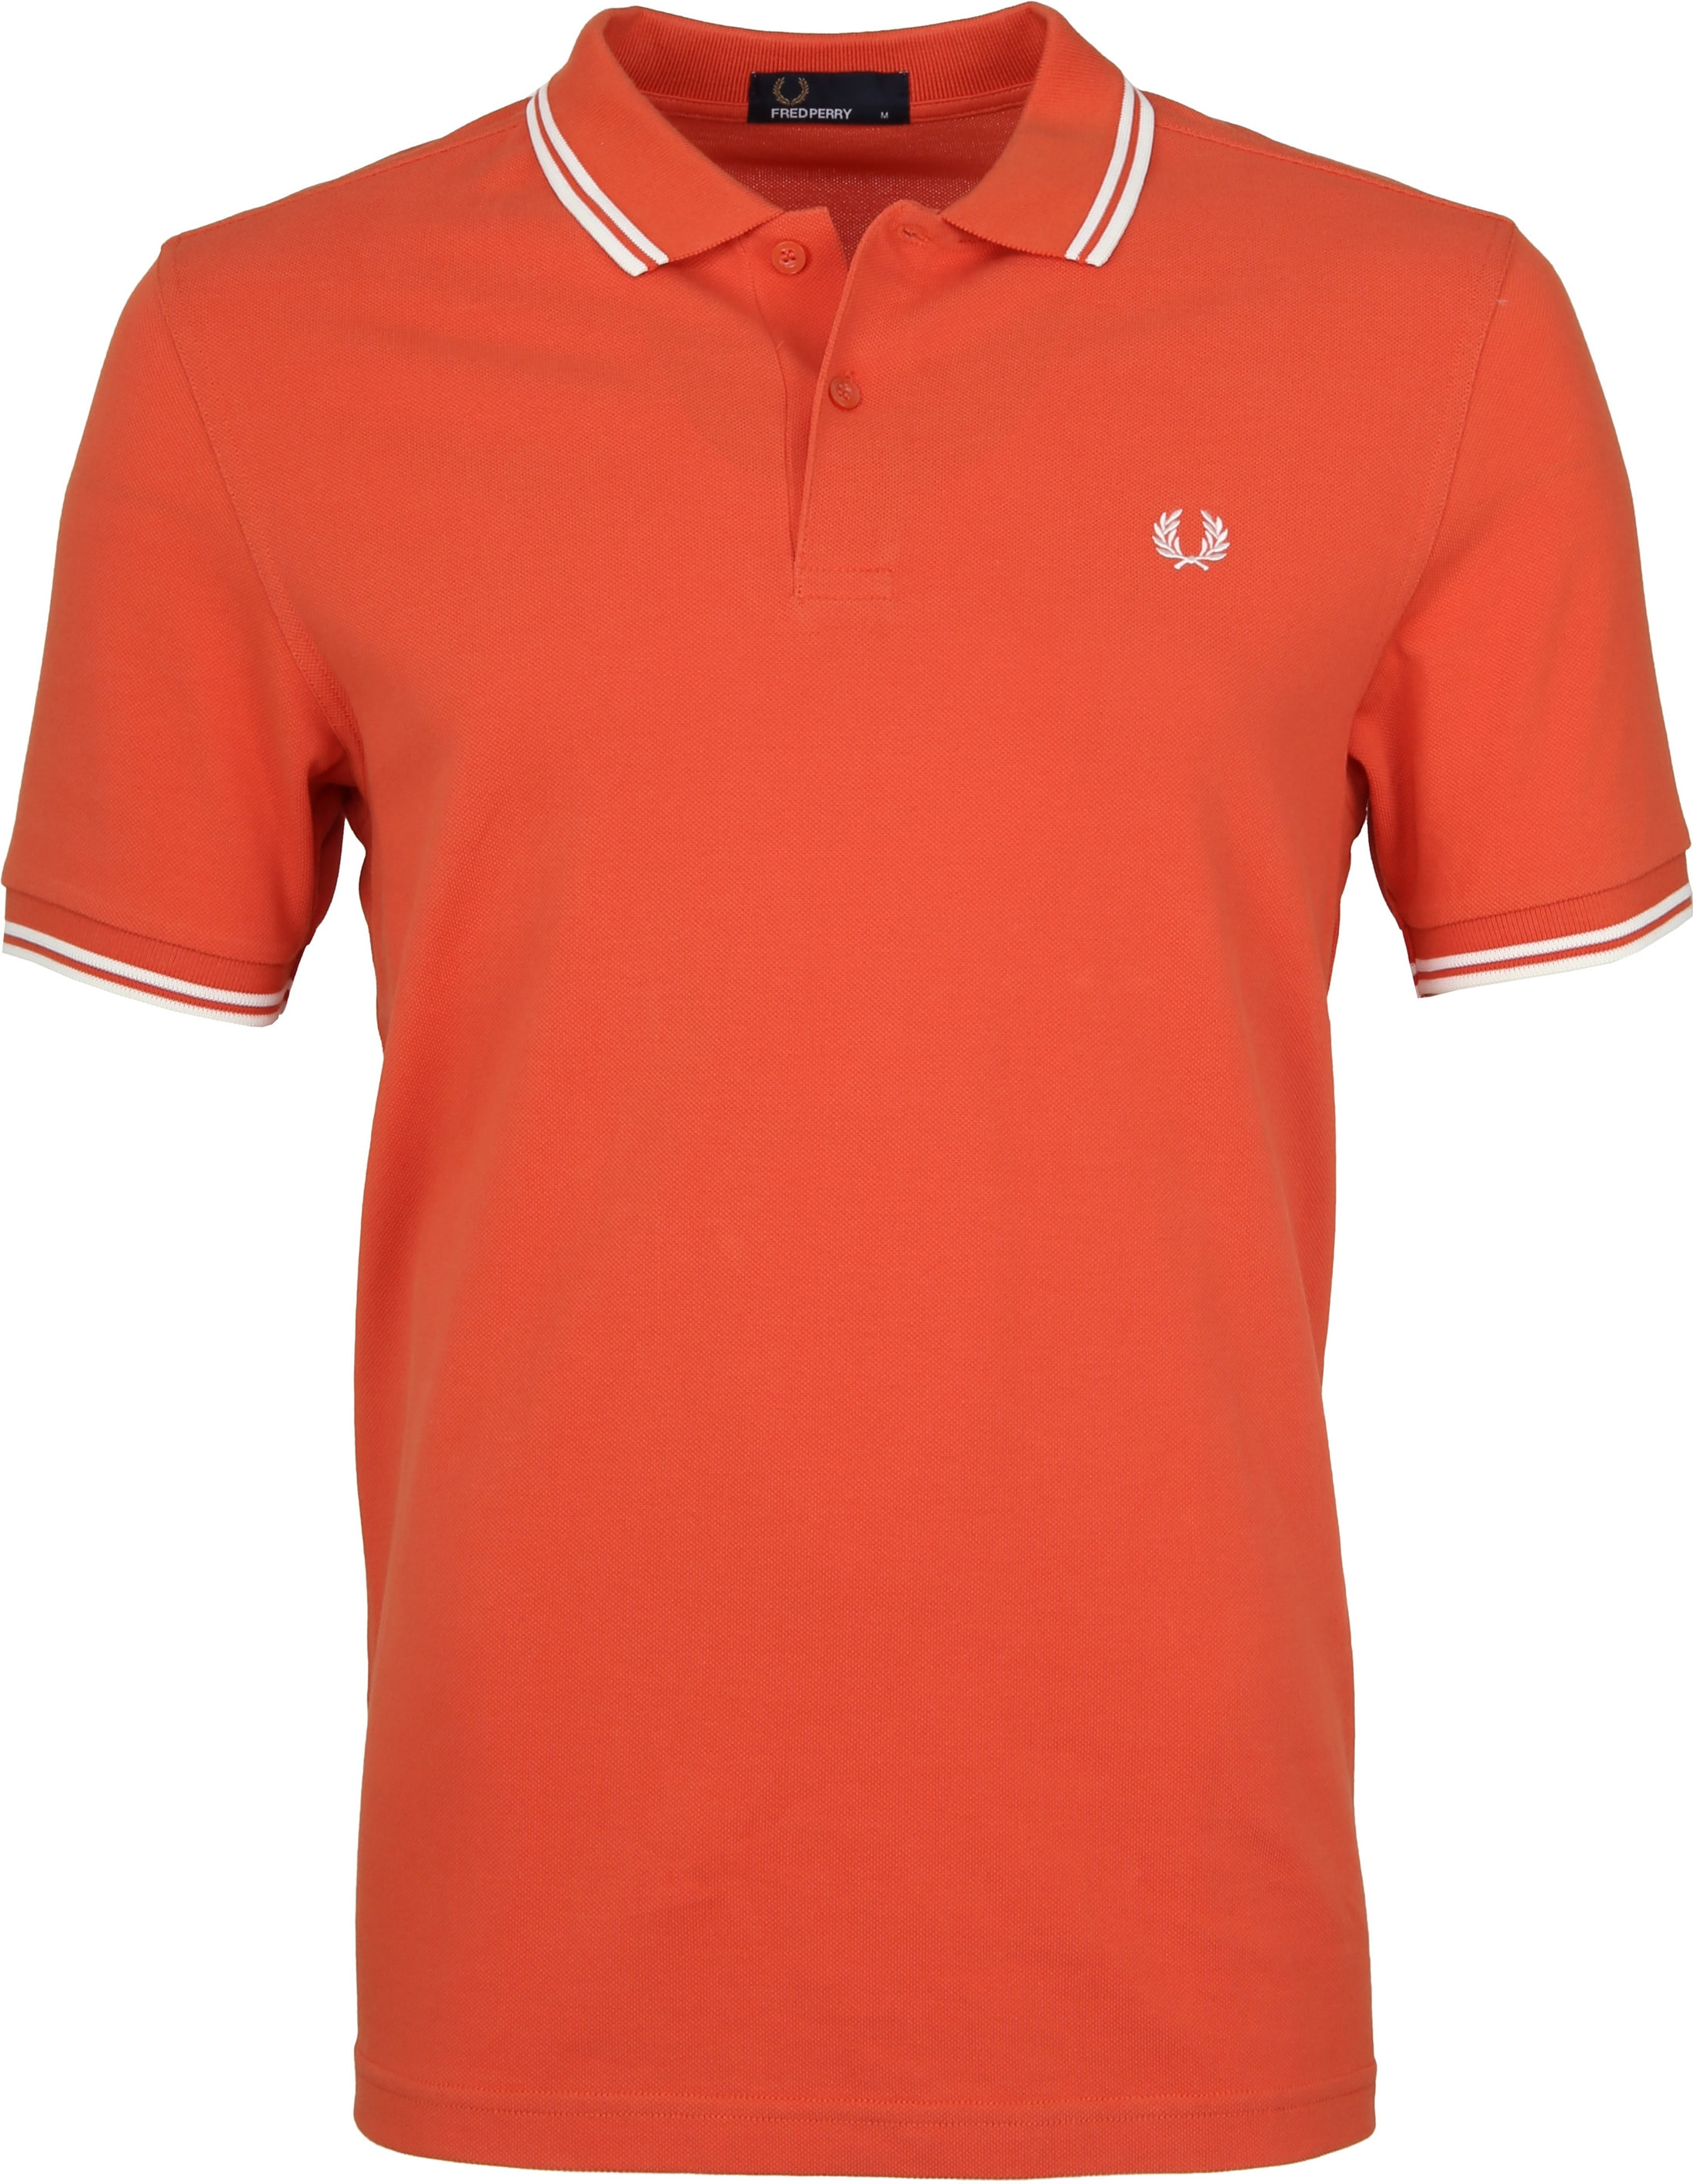 Fred Perry Poloshirt Orange G93 foto 0